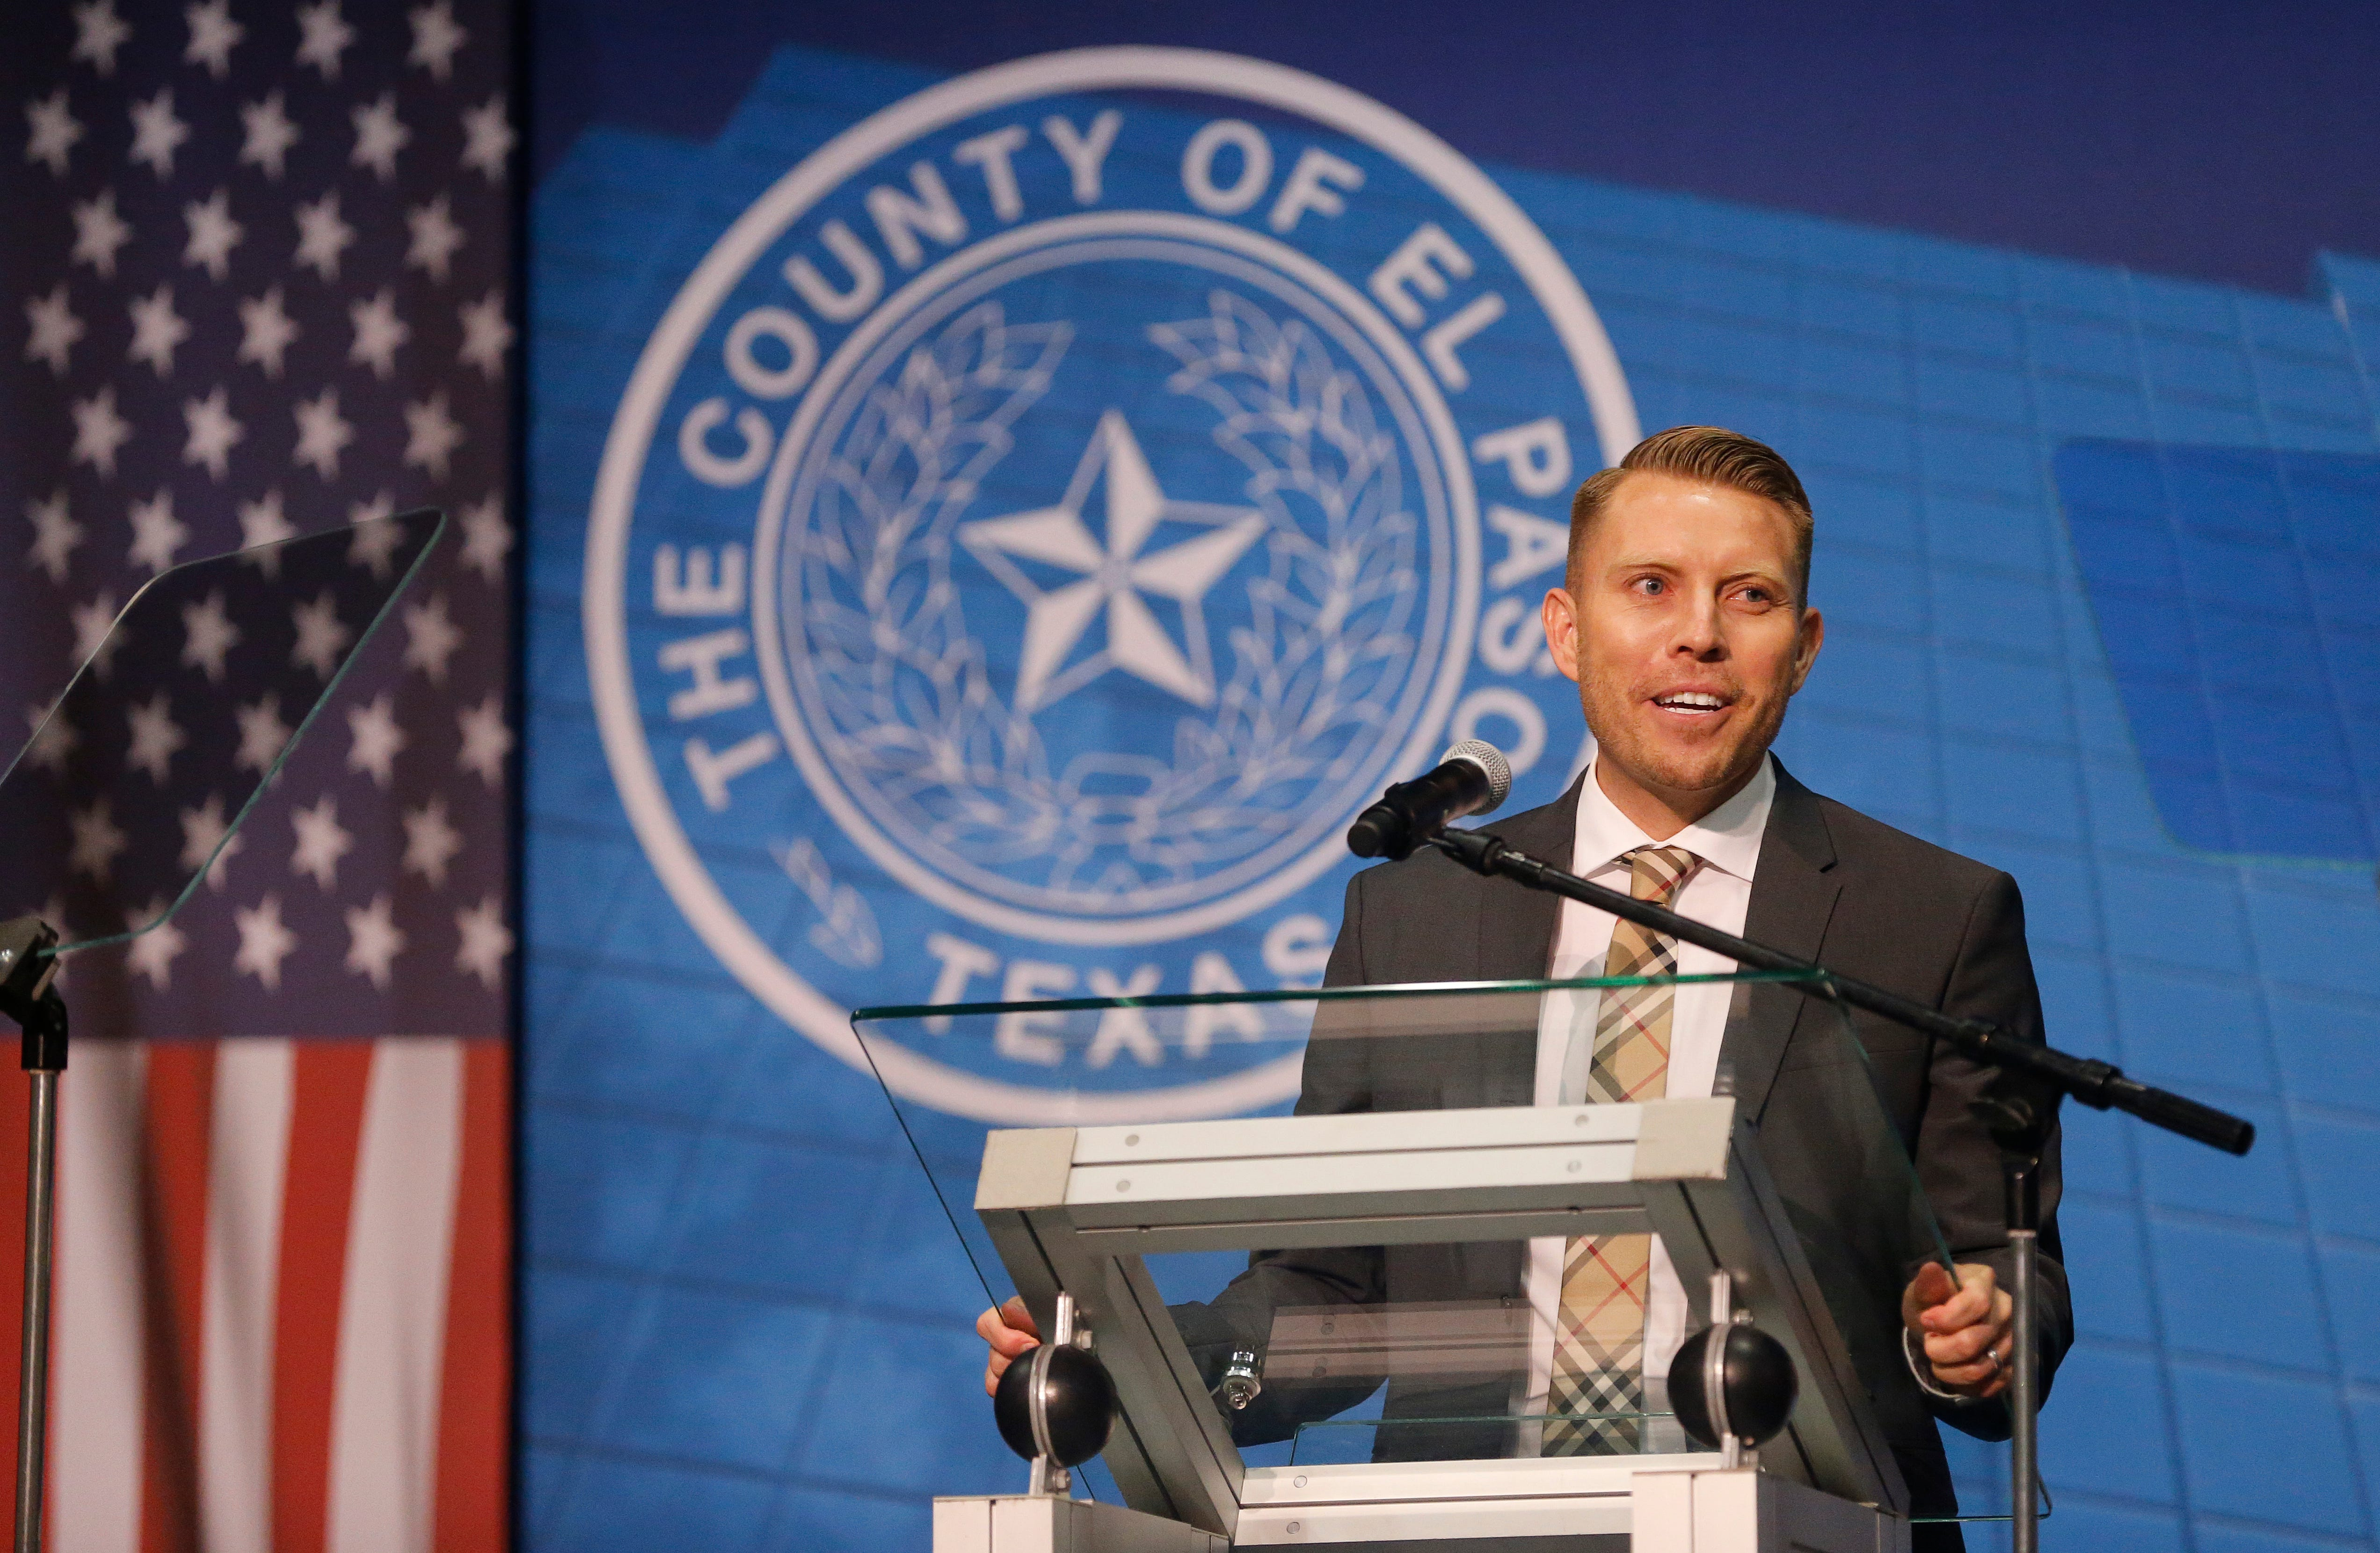 El Paso County Judge Ruben Vogt details successes, challenges in State of County address | El Paso Times